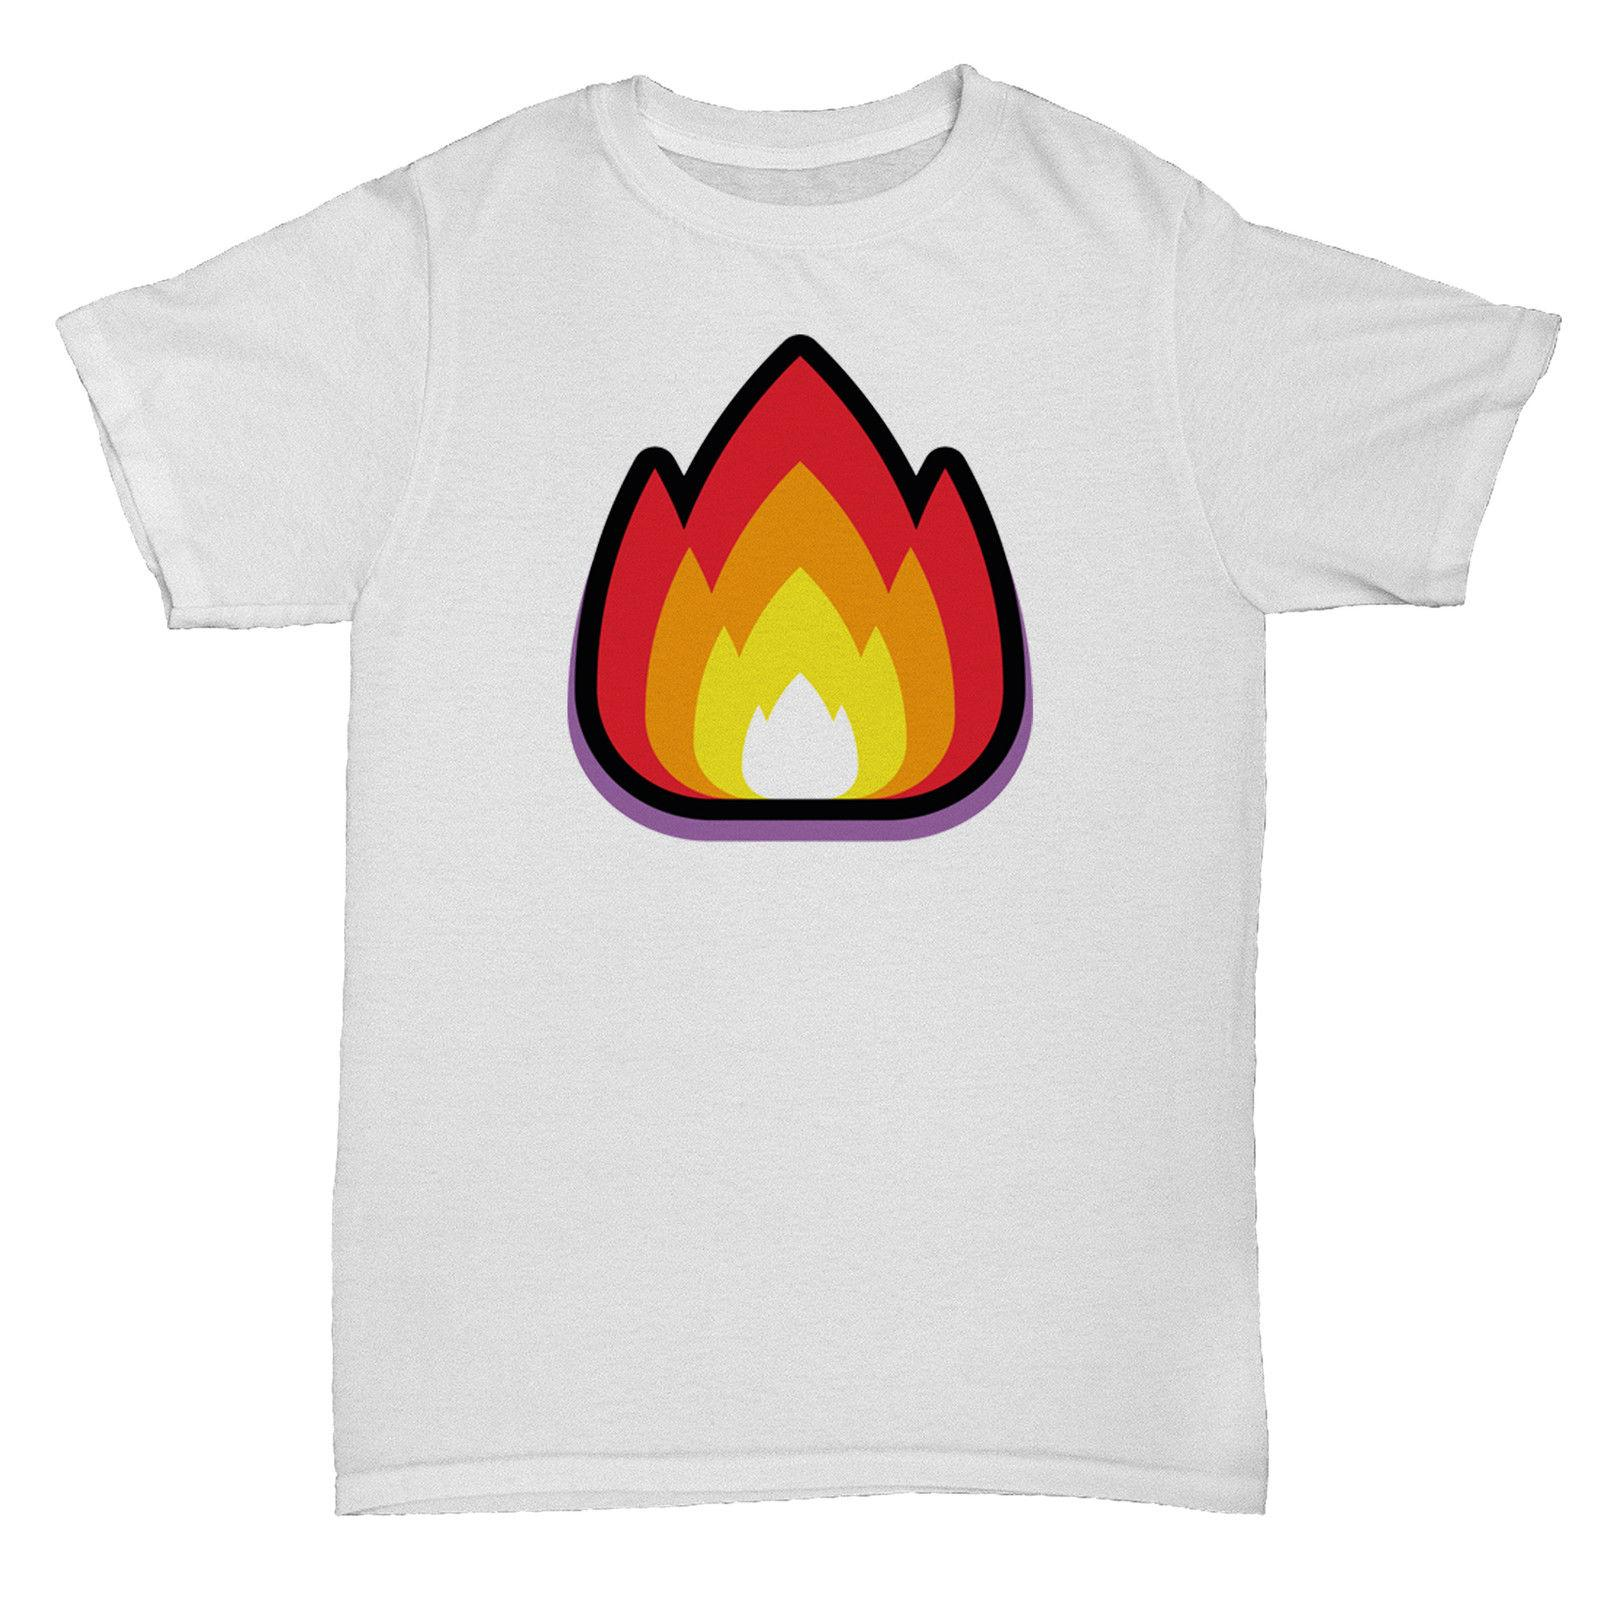 6f249bb8ea76 FIRE EMOJI EMOTICON SMILY FACE COOL INSPIRED RETRO CULT FUNNY TUMBLR T Shirt  Gag T Shirts T Shirts With Prints From Limitlessprints